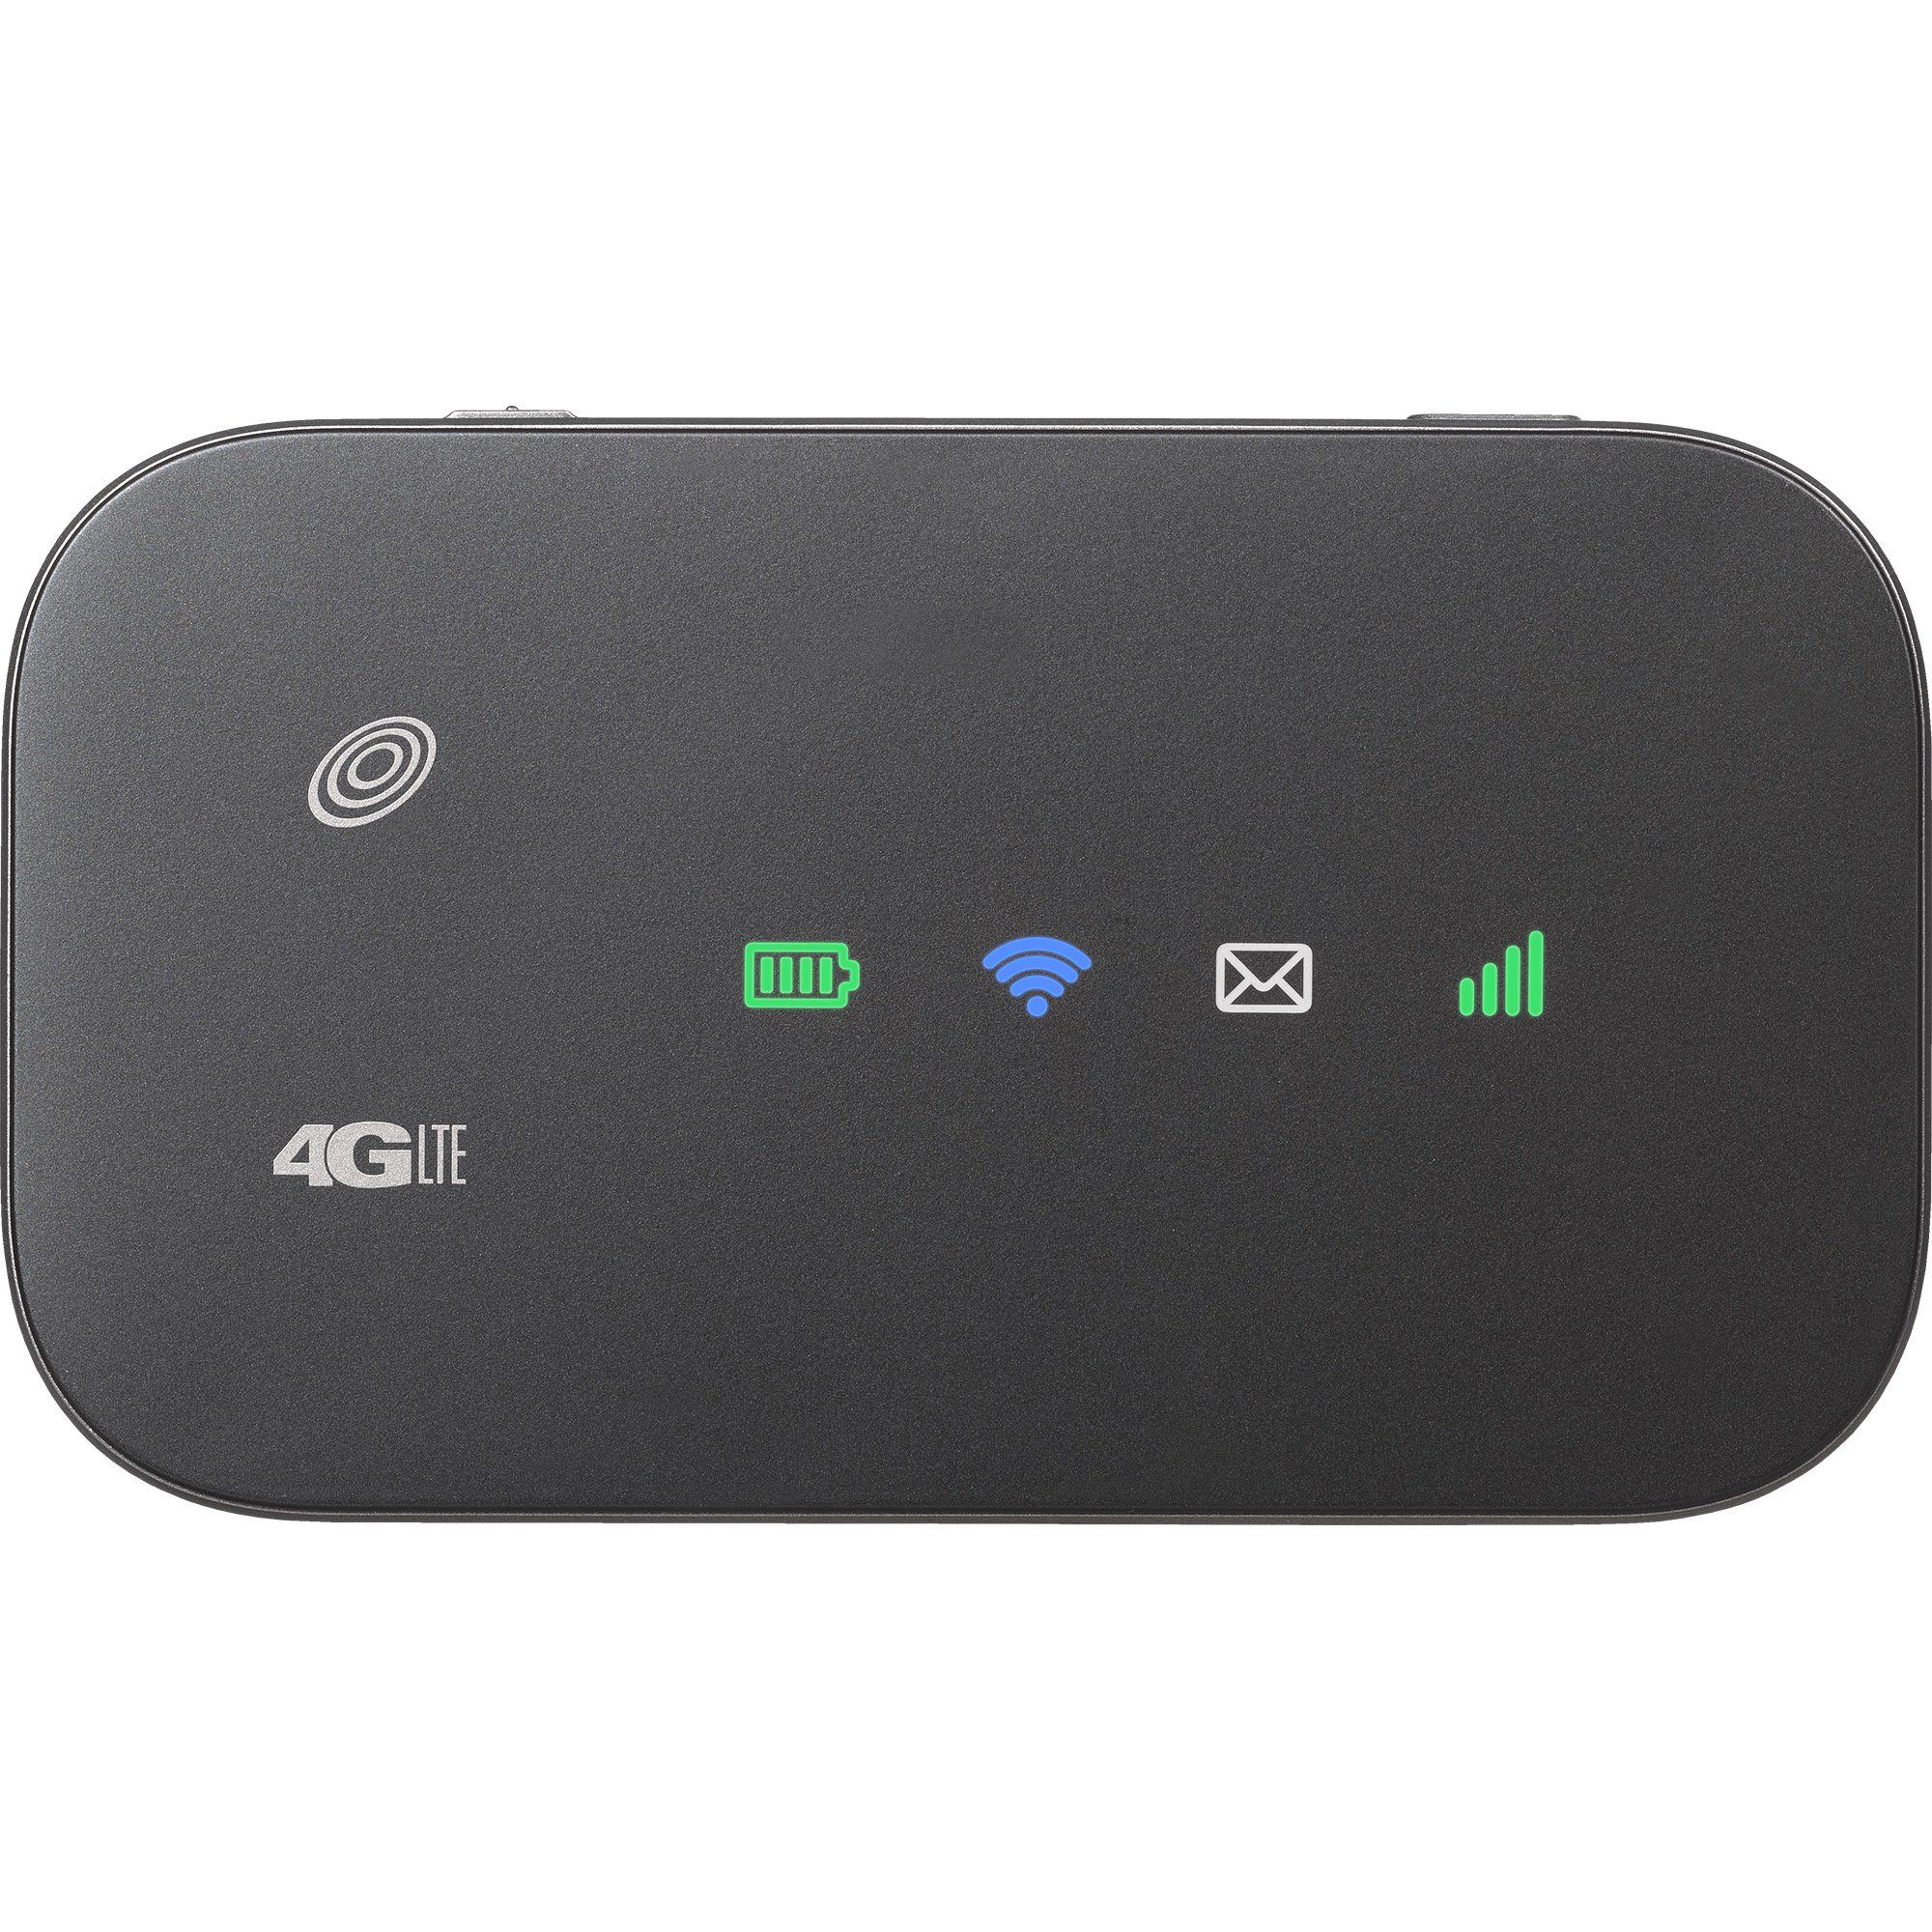 Simple Mobile Hotspot with 15GB of Data for 30 Days of Service